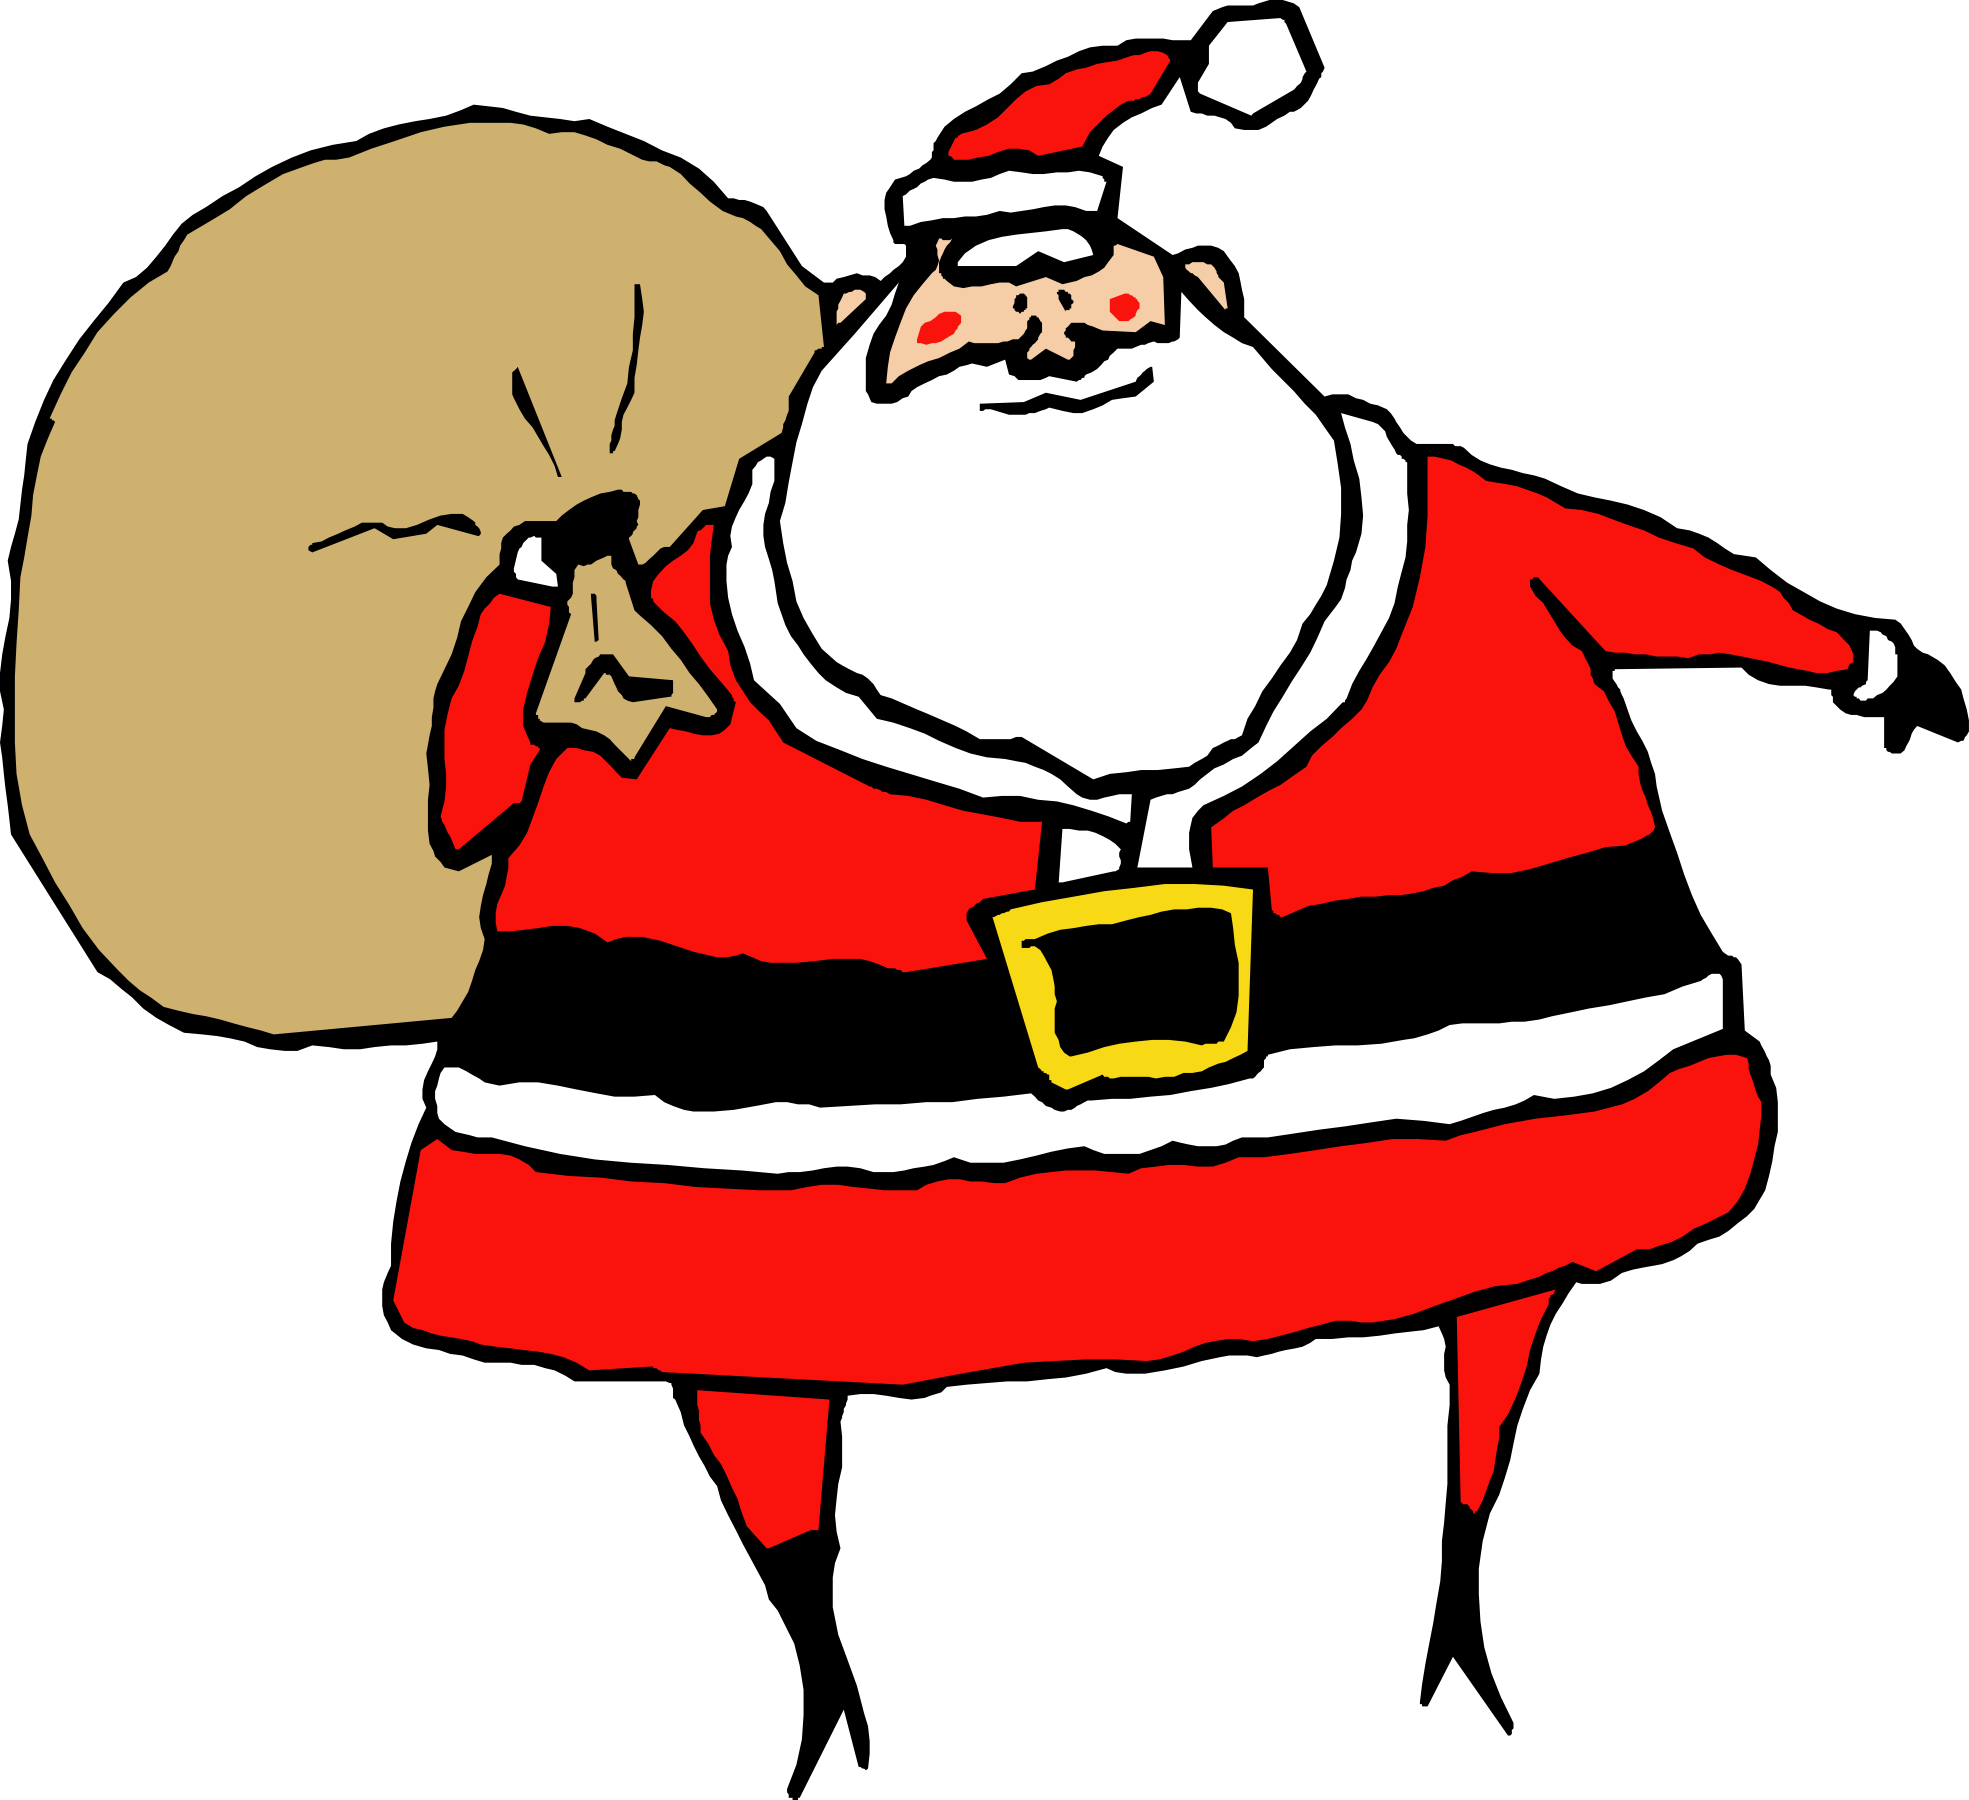 48 santa claus clip art free cliparts that you can download to you ...